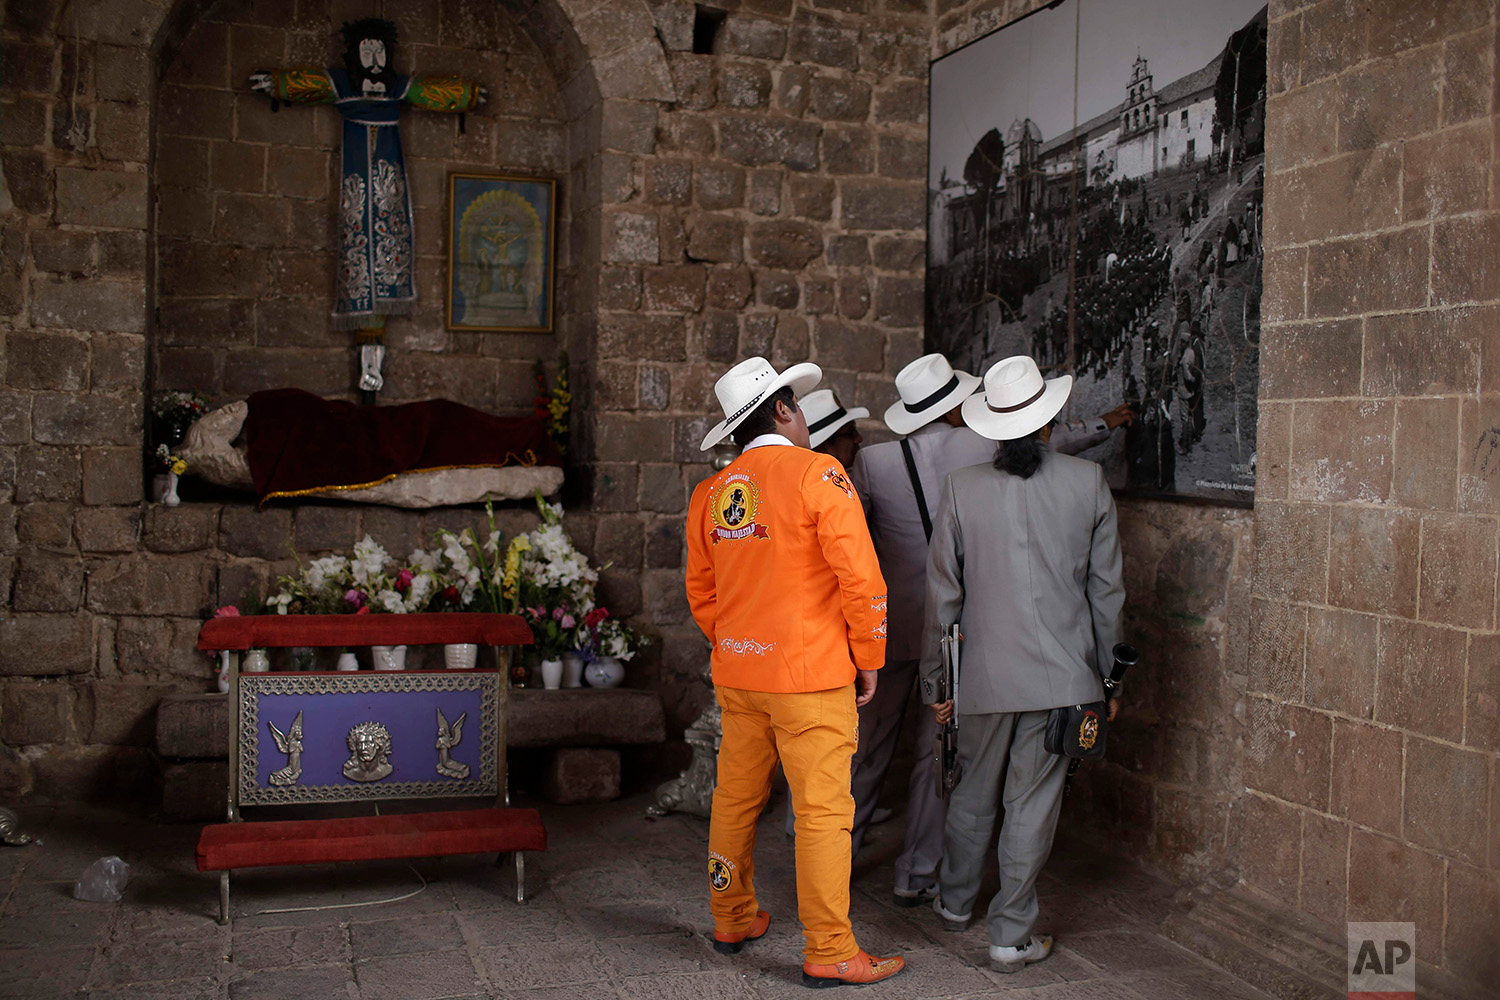 Members of the Majestic Union band look at a 1930's Martin Chambi photo, displayed on a facade of the Almudena Temple, in Cuzco, Peru. Aug. 5, 2018.  Chambi was known for photographing the elite members of Cuzco's society, as well as extensively documenting the Peruvian indigenous culture. (AP Photo/Martin Mejia)